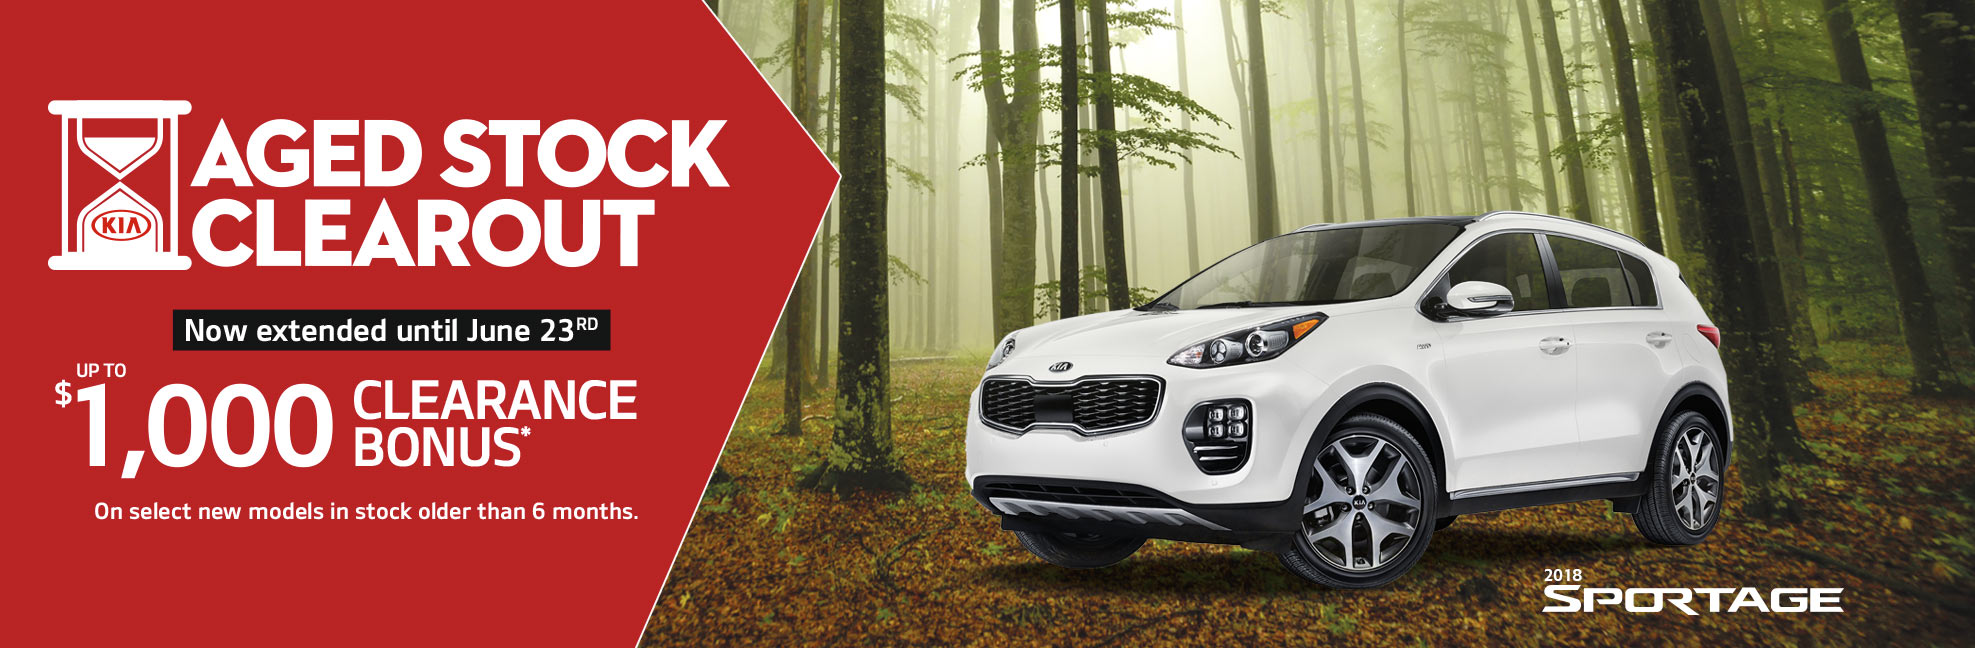 Discover Kia - capture-sale-extended